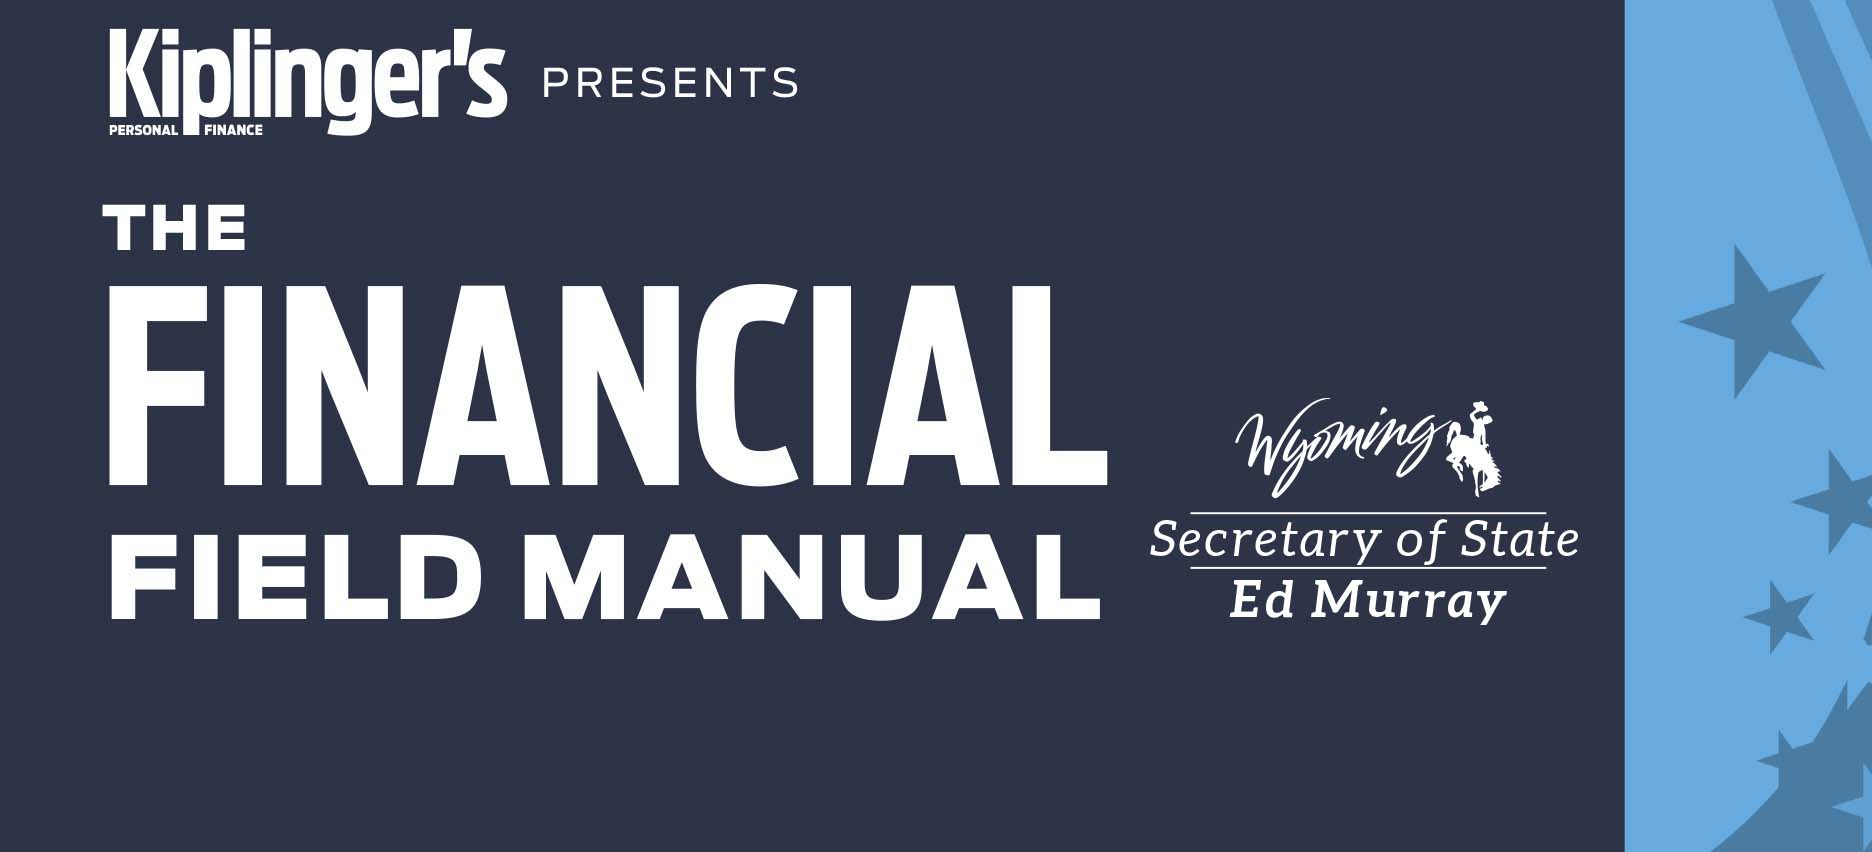 Are you a member of the military? Review the Financial Field Guide!